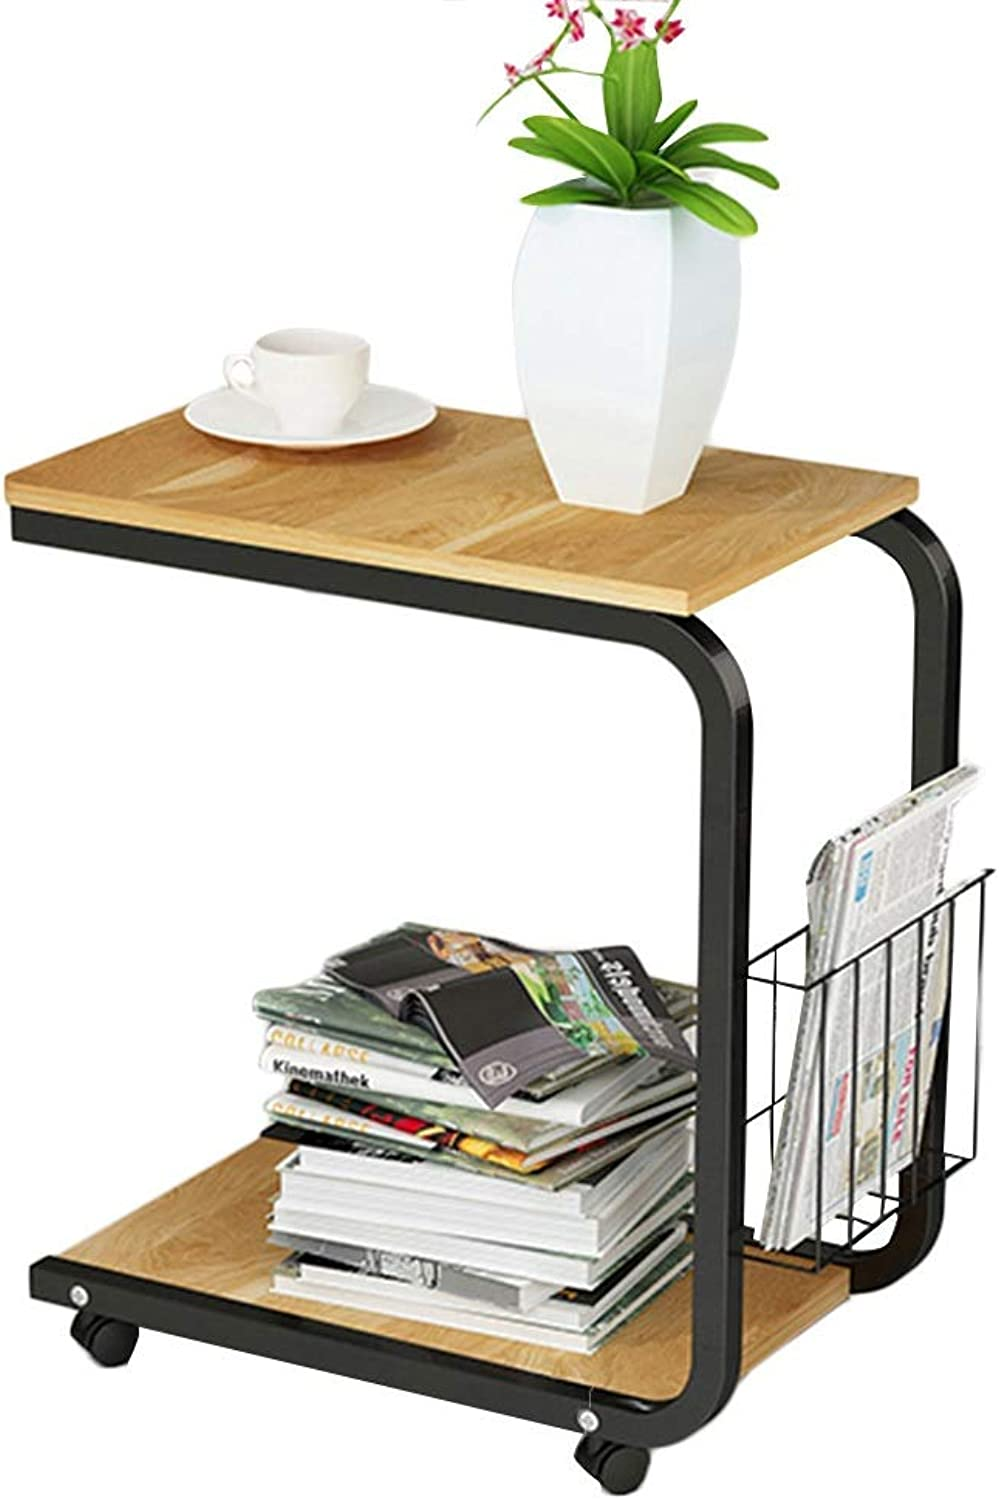 PENGFEI Laptop Stand for Desk Simple and Versatile Small Coffee Table Dining Tables Mobile Shelf Wood-Based Panels, 4 colors (color   A, Size   51X30X56CM)